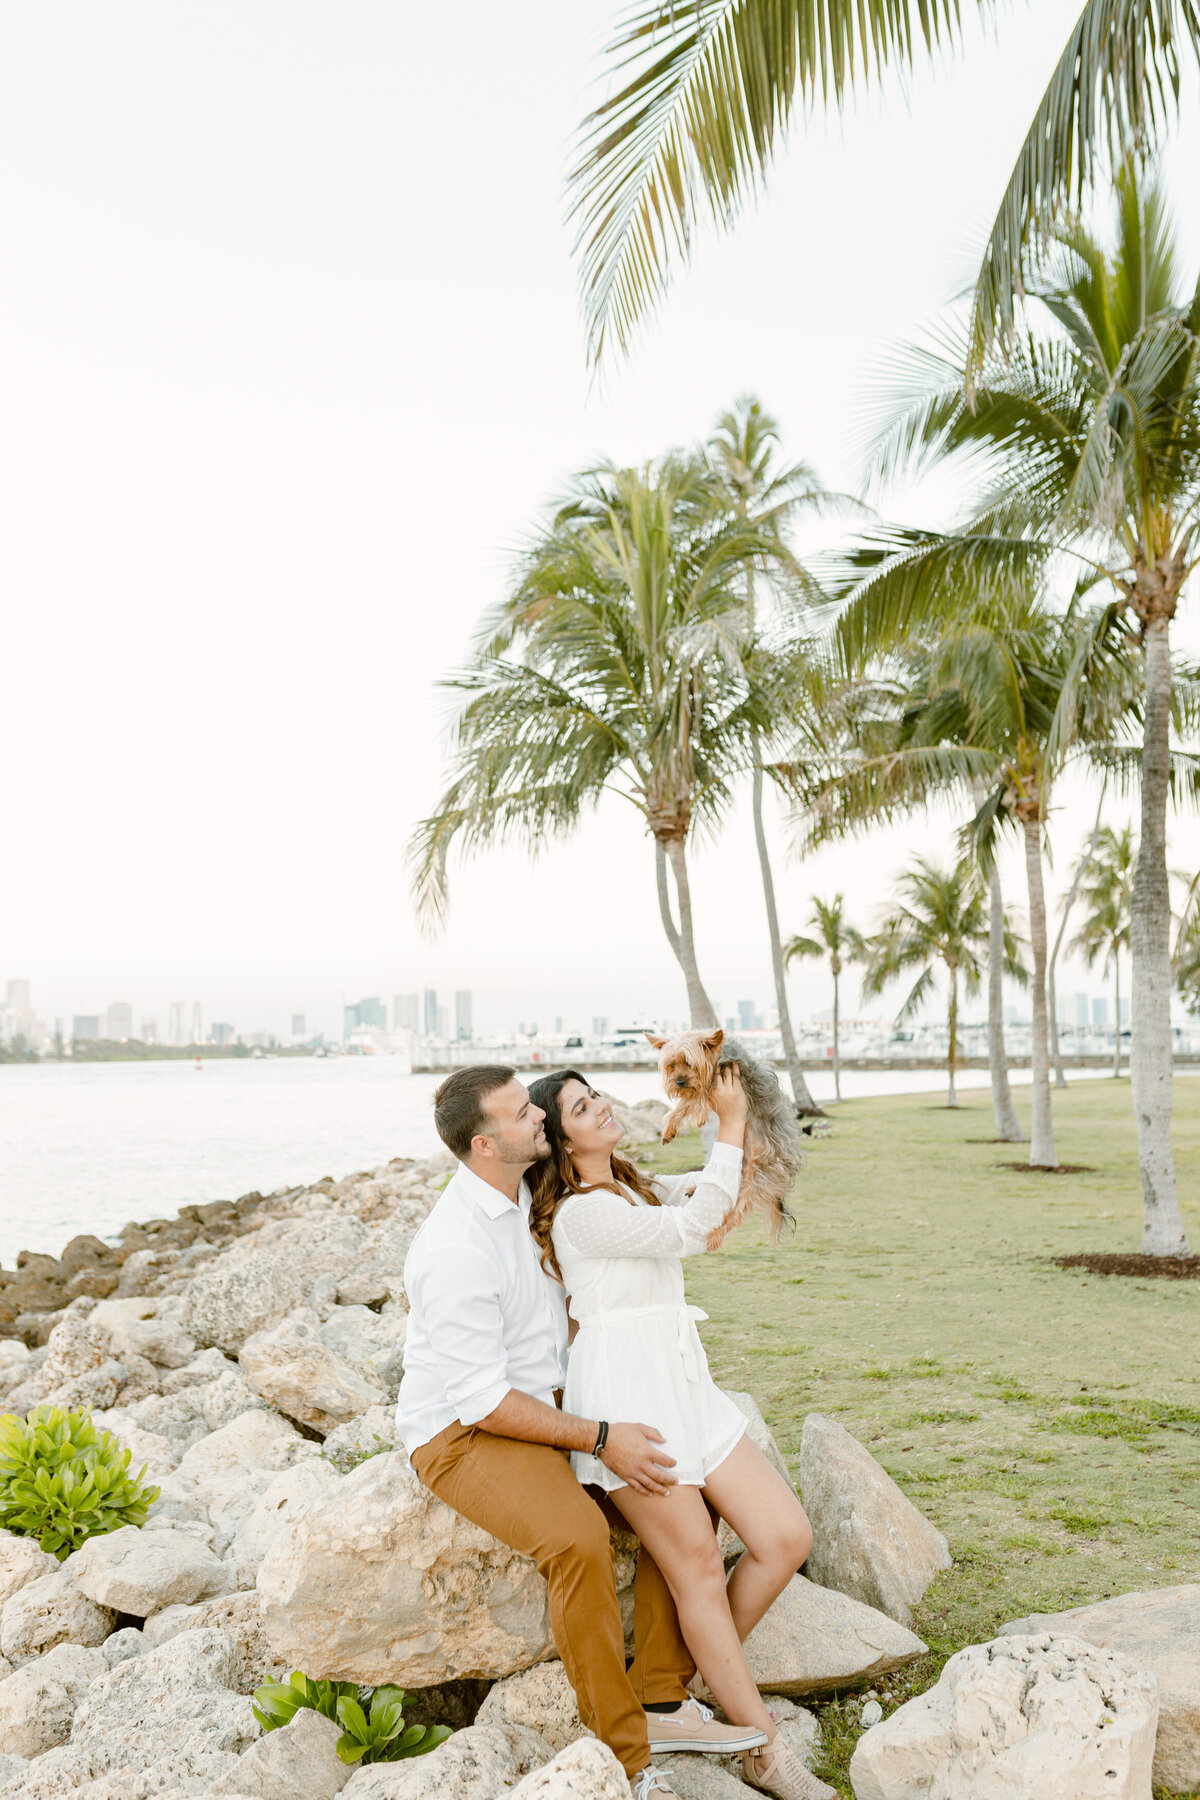 South Pointe Park Engagement Photography Session 5